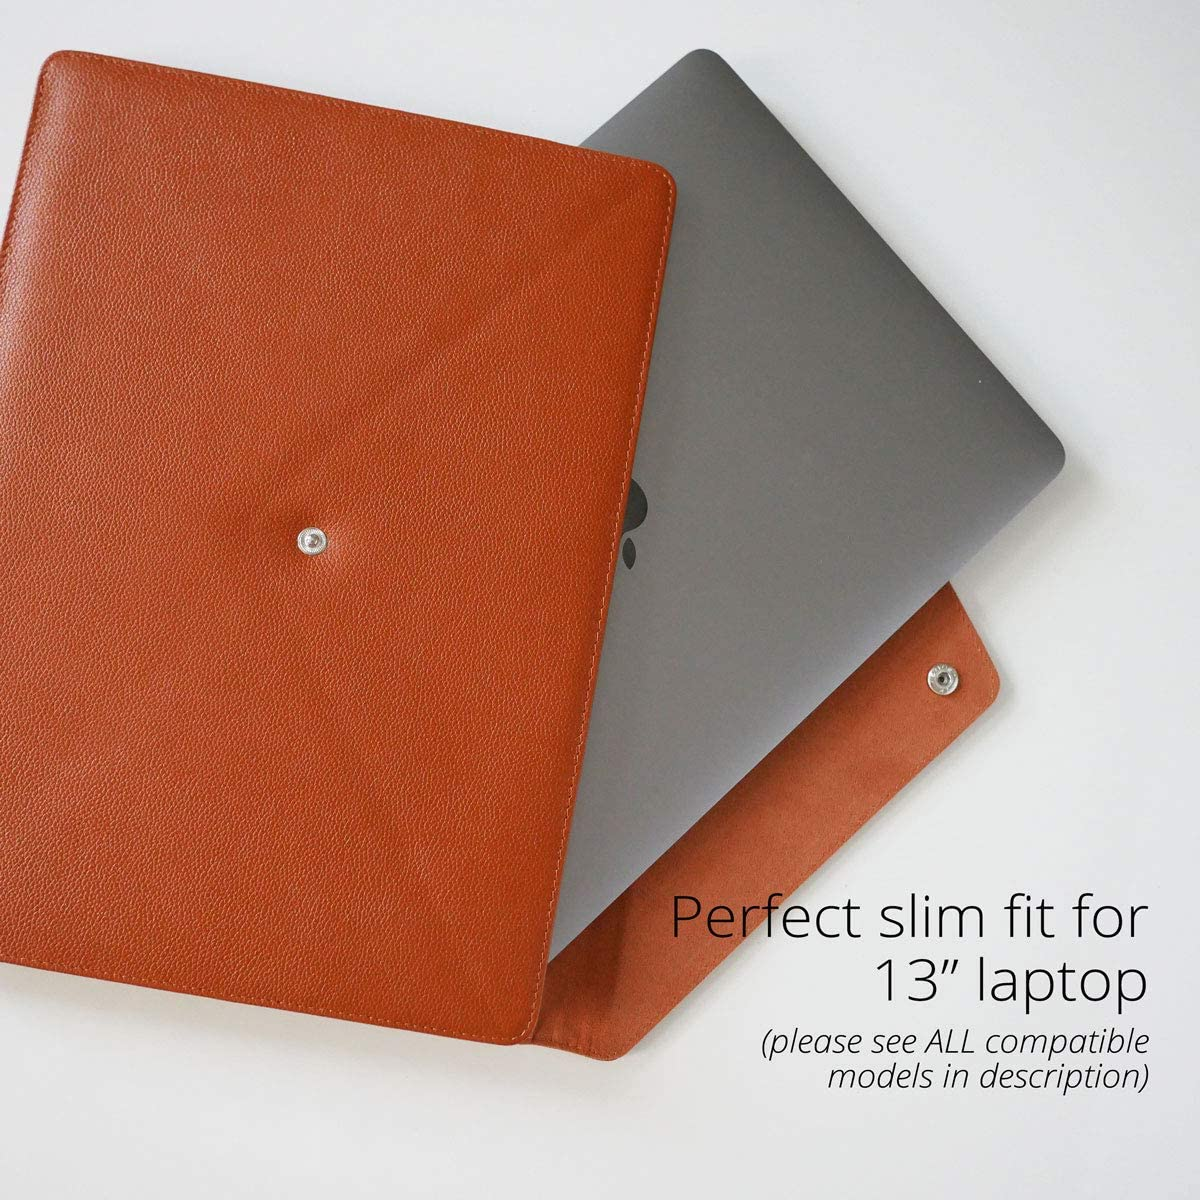 """iPad Pro 12.9/"""" New MacBook Air 13/"""" 2019 Dell XPS 13/"""" Microsoft Surface Pro 12.3/"""" 2018-2019 Italian Full Grain Leather Sleeve//Case for MacBook Pro 13/"""" Retina Brown//Cognac Color Handcrafted"""